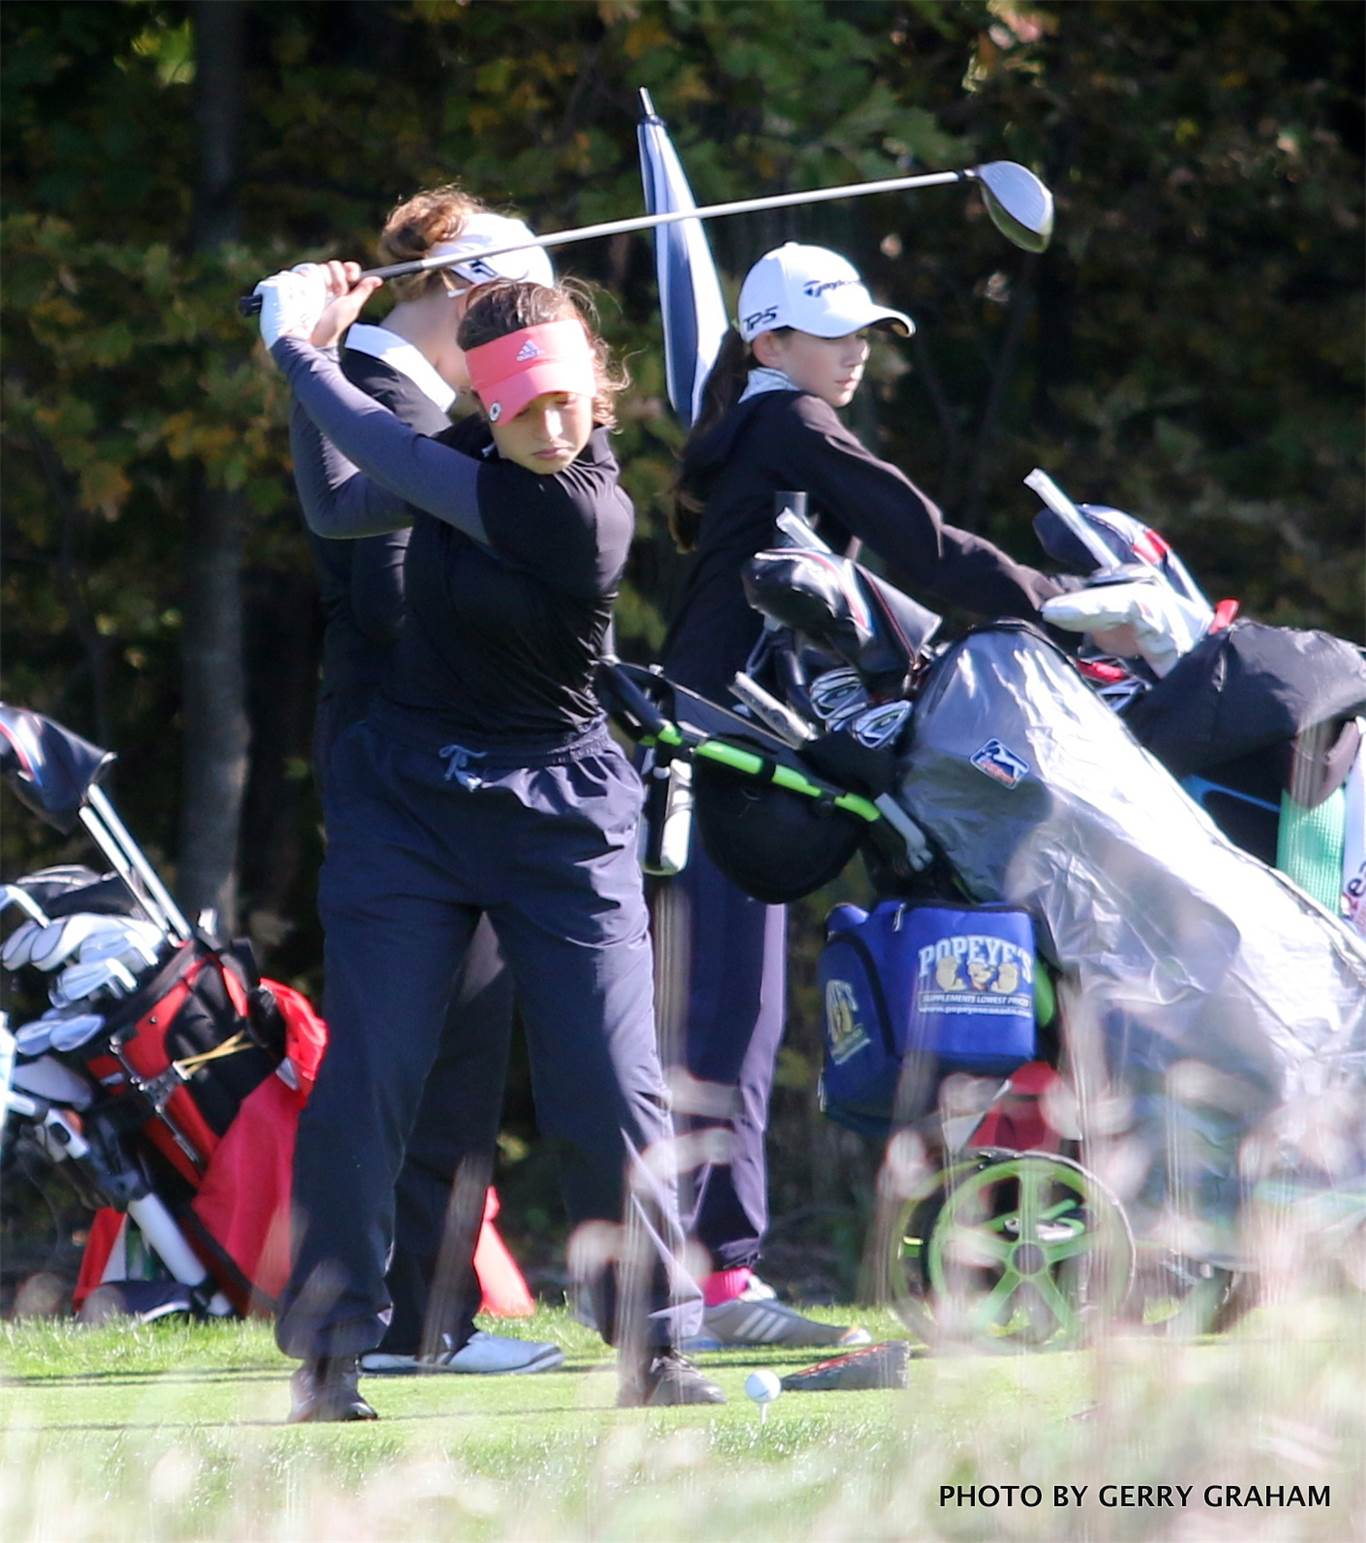 In the girls' 10-player division at Piper's Heath, Meg Miron of Hamilton's ACMT Jaguars carded an 85, one-shot behind the winner, Alexis McMurray of Iroquois Ridge. Photo by Gerry Graham.